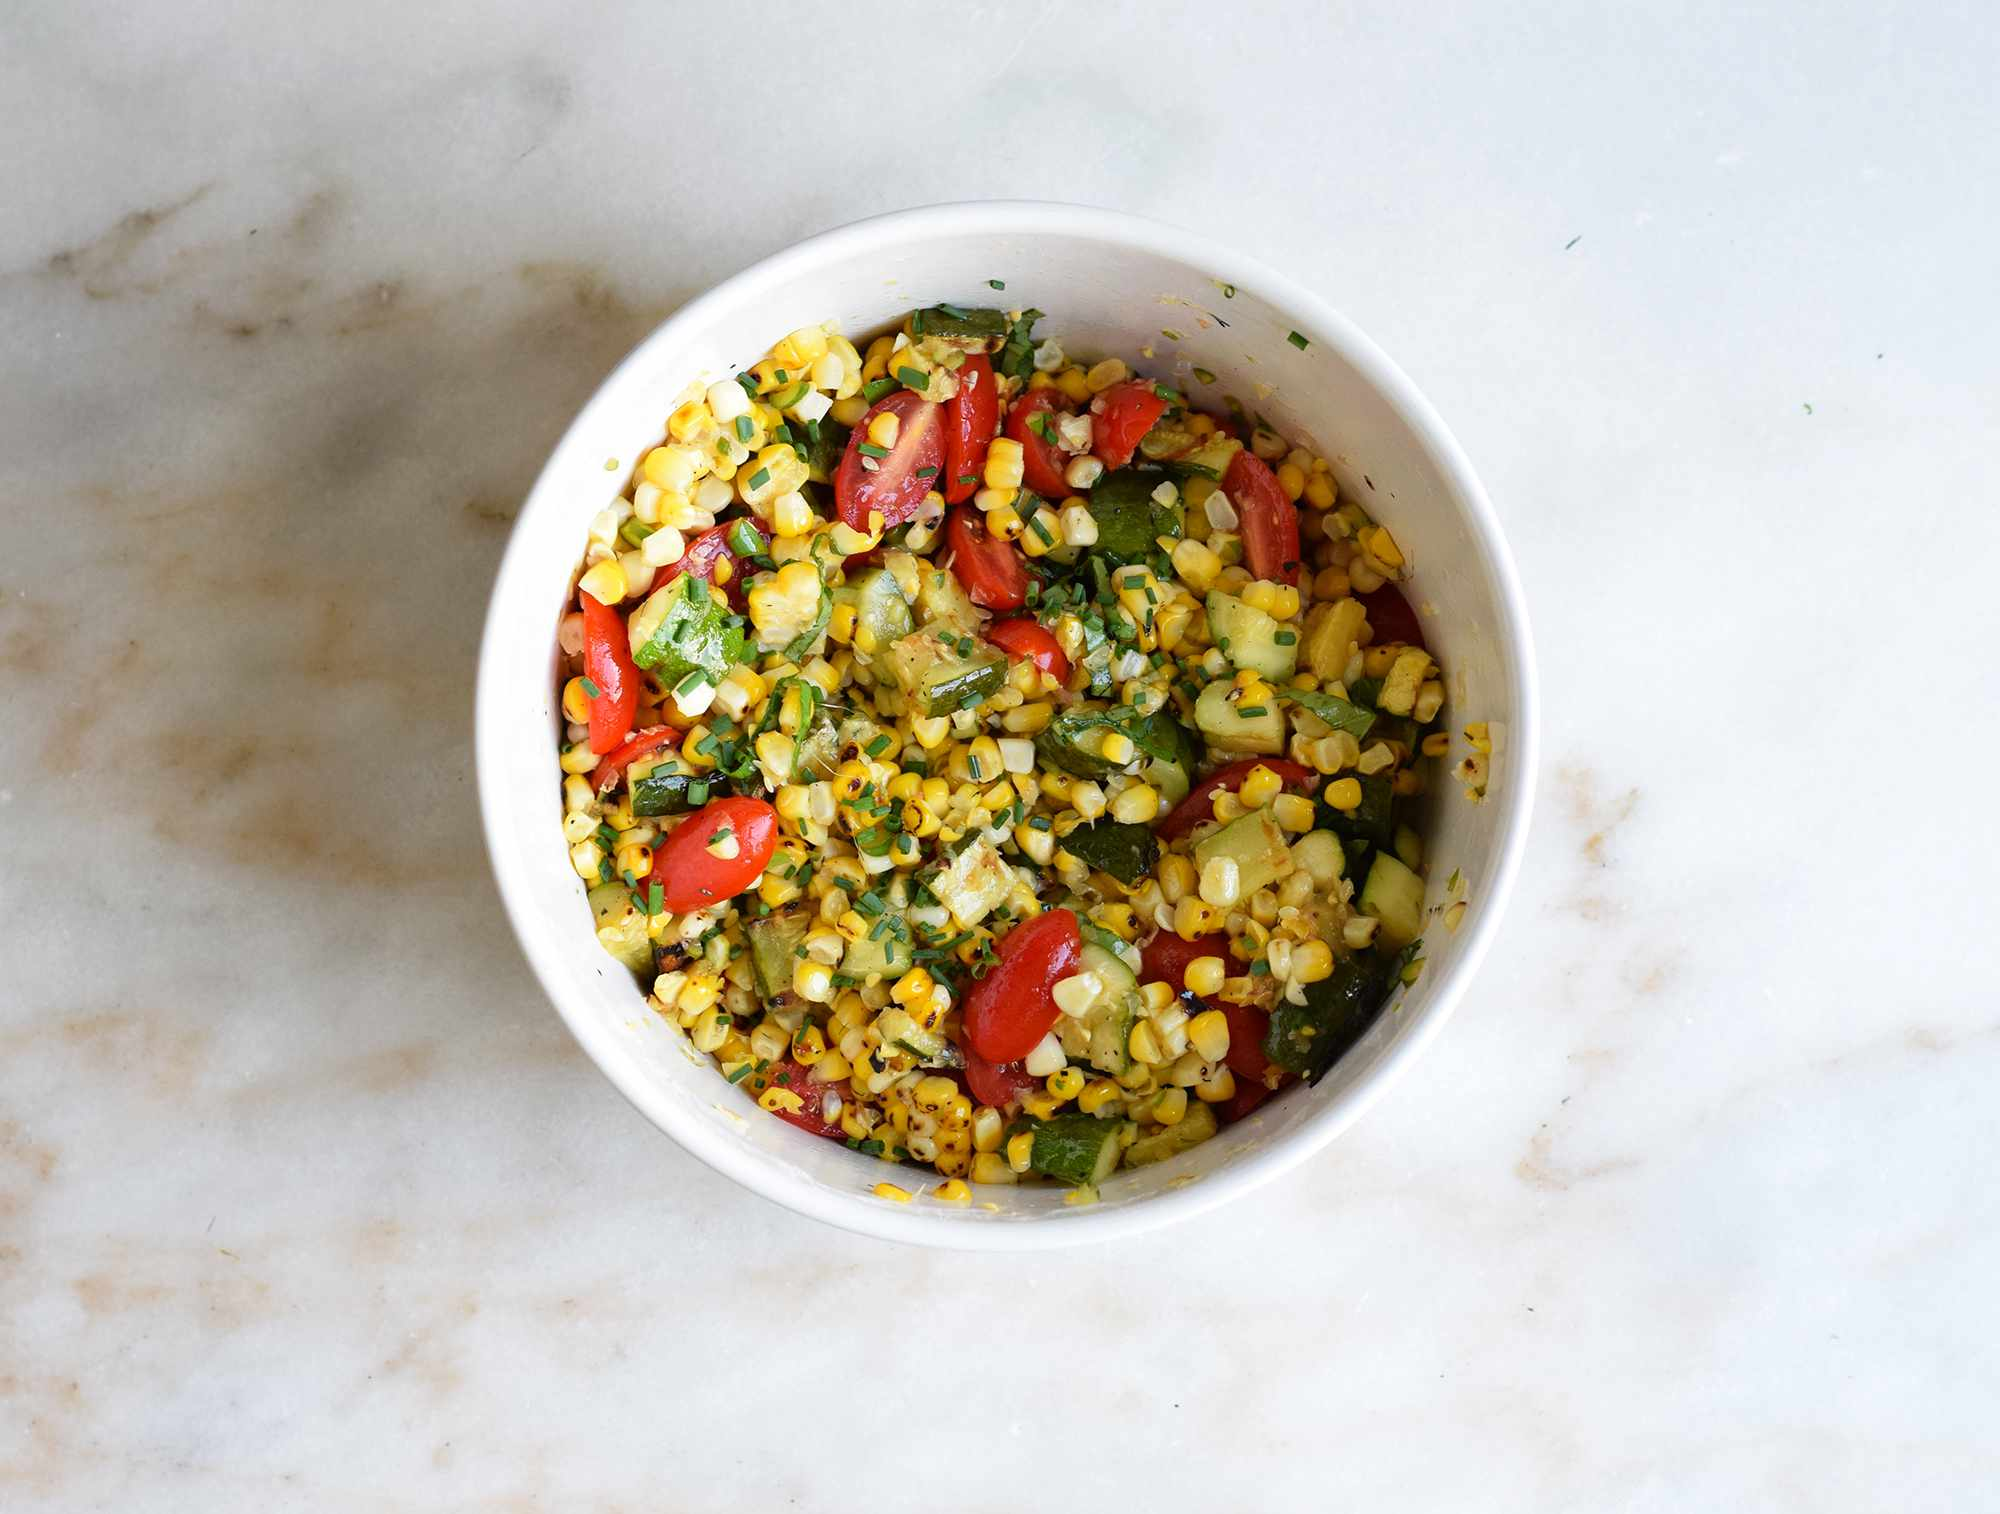 corn salad tossed in a bowl